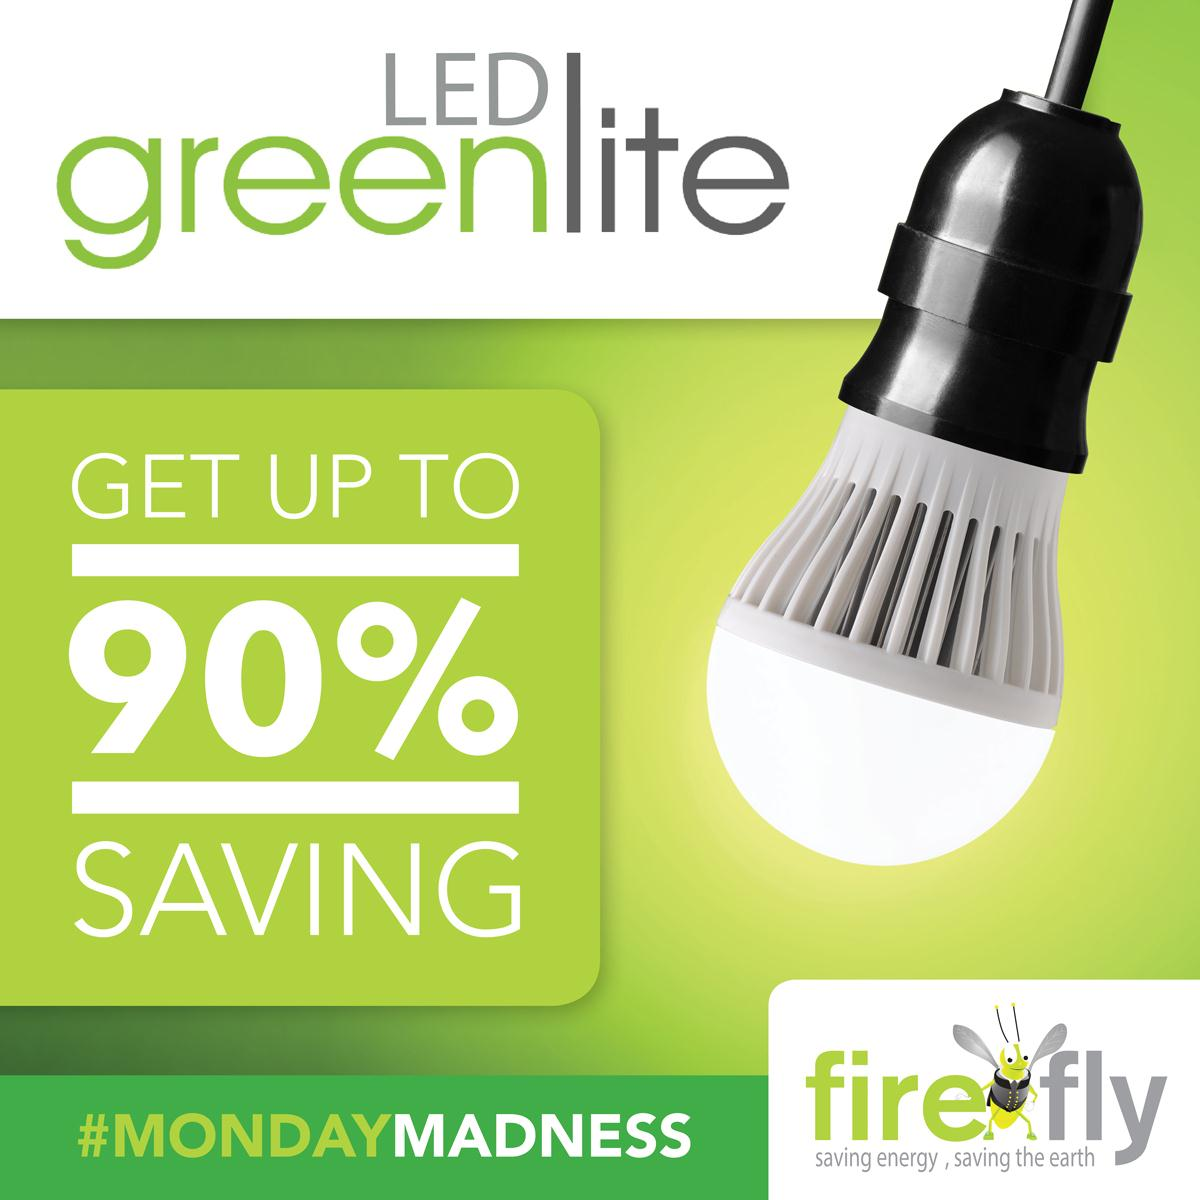 Led Light Fittings Durban: Firefly Products, Hillcrest